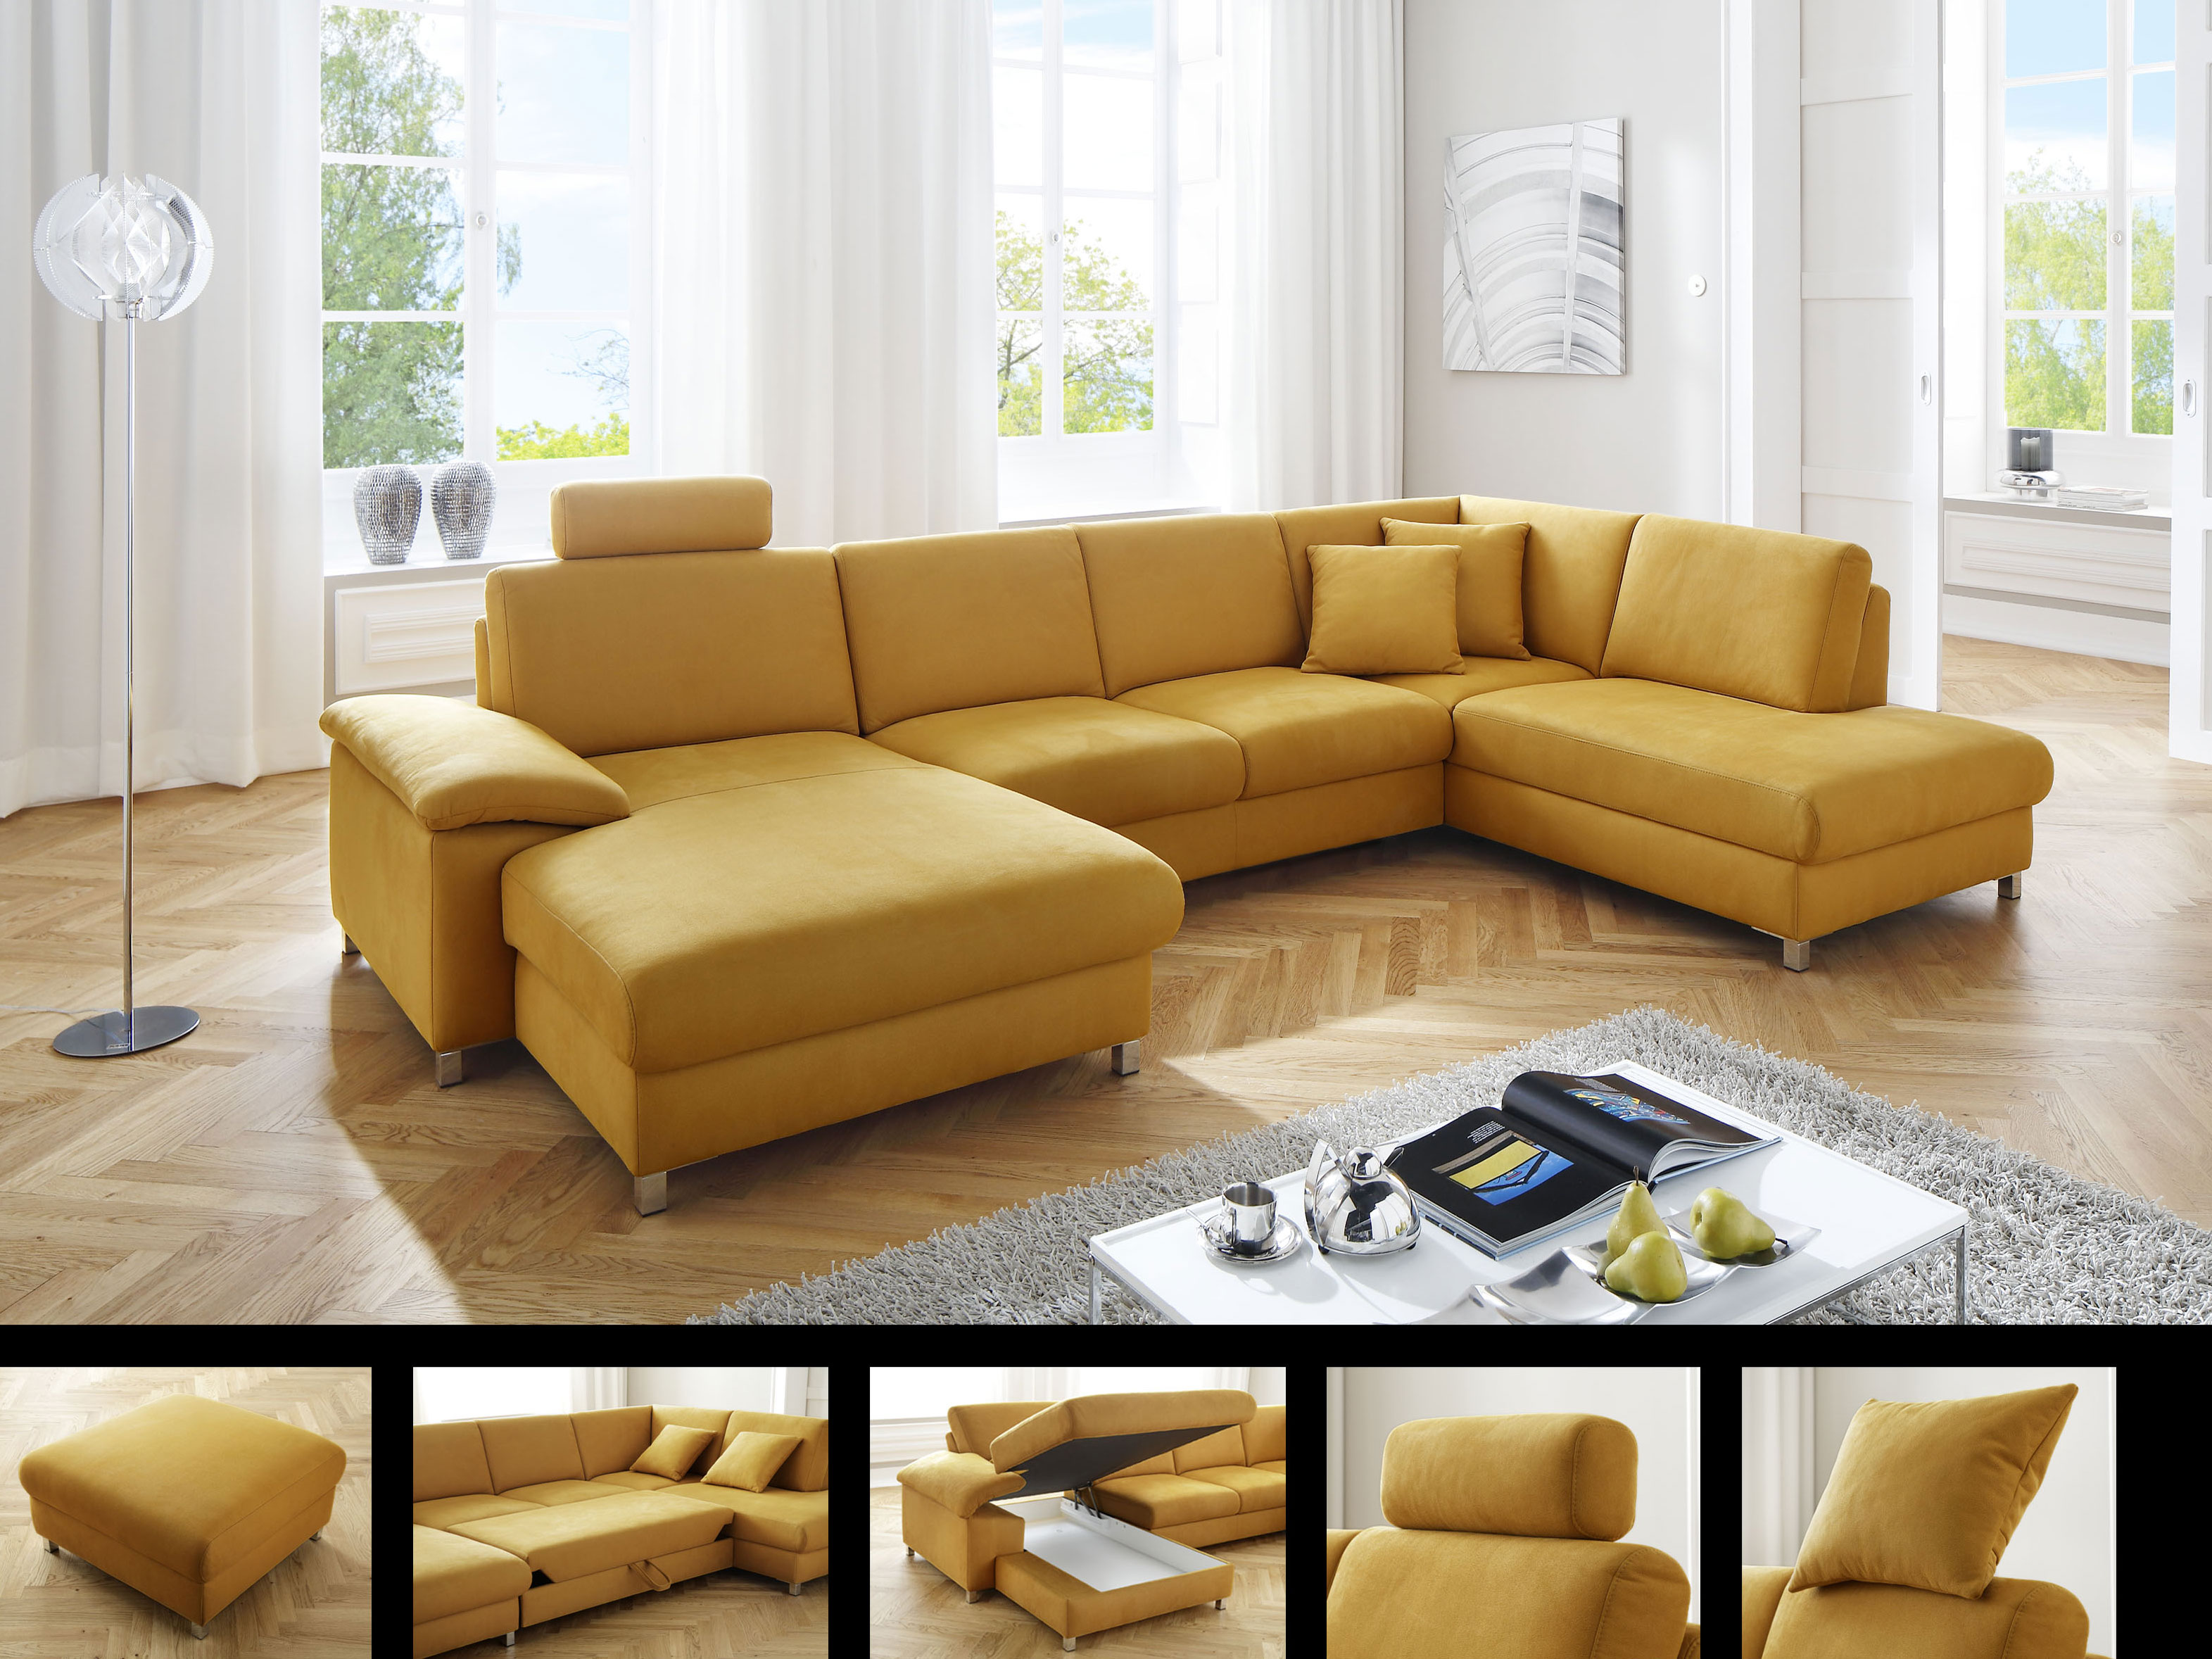 Chilliano Couch Leder Sofa Gelb Leder Review Home Co